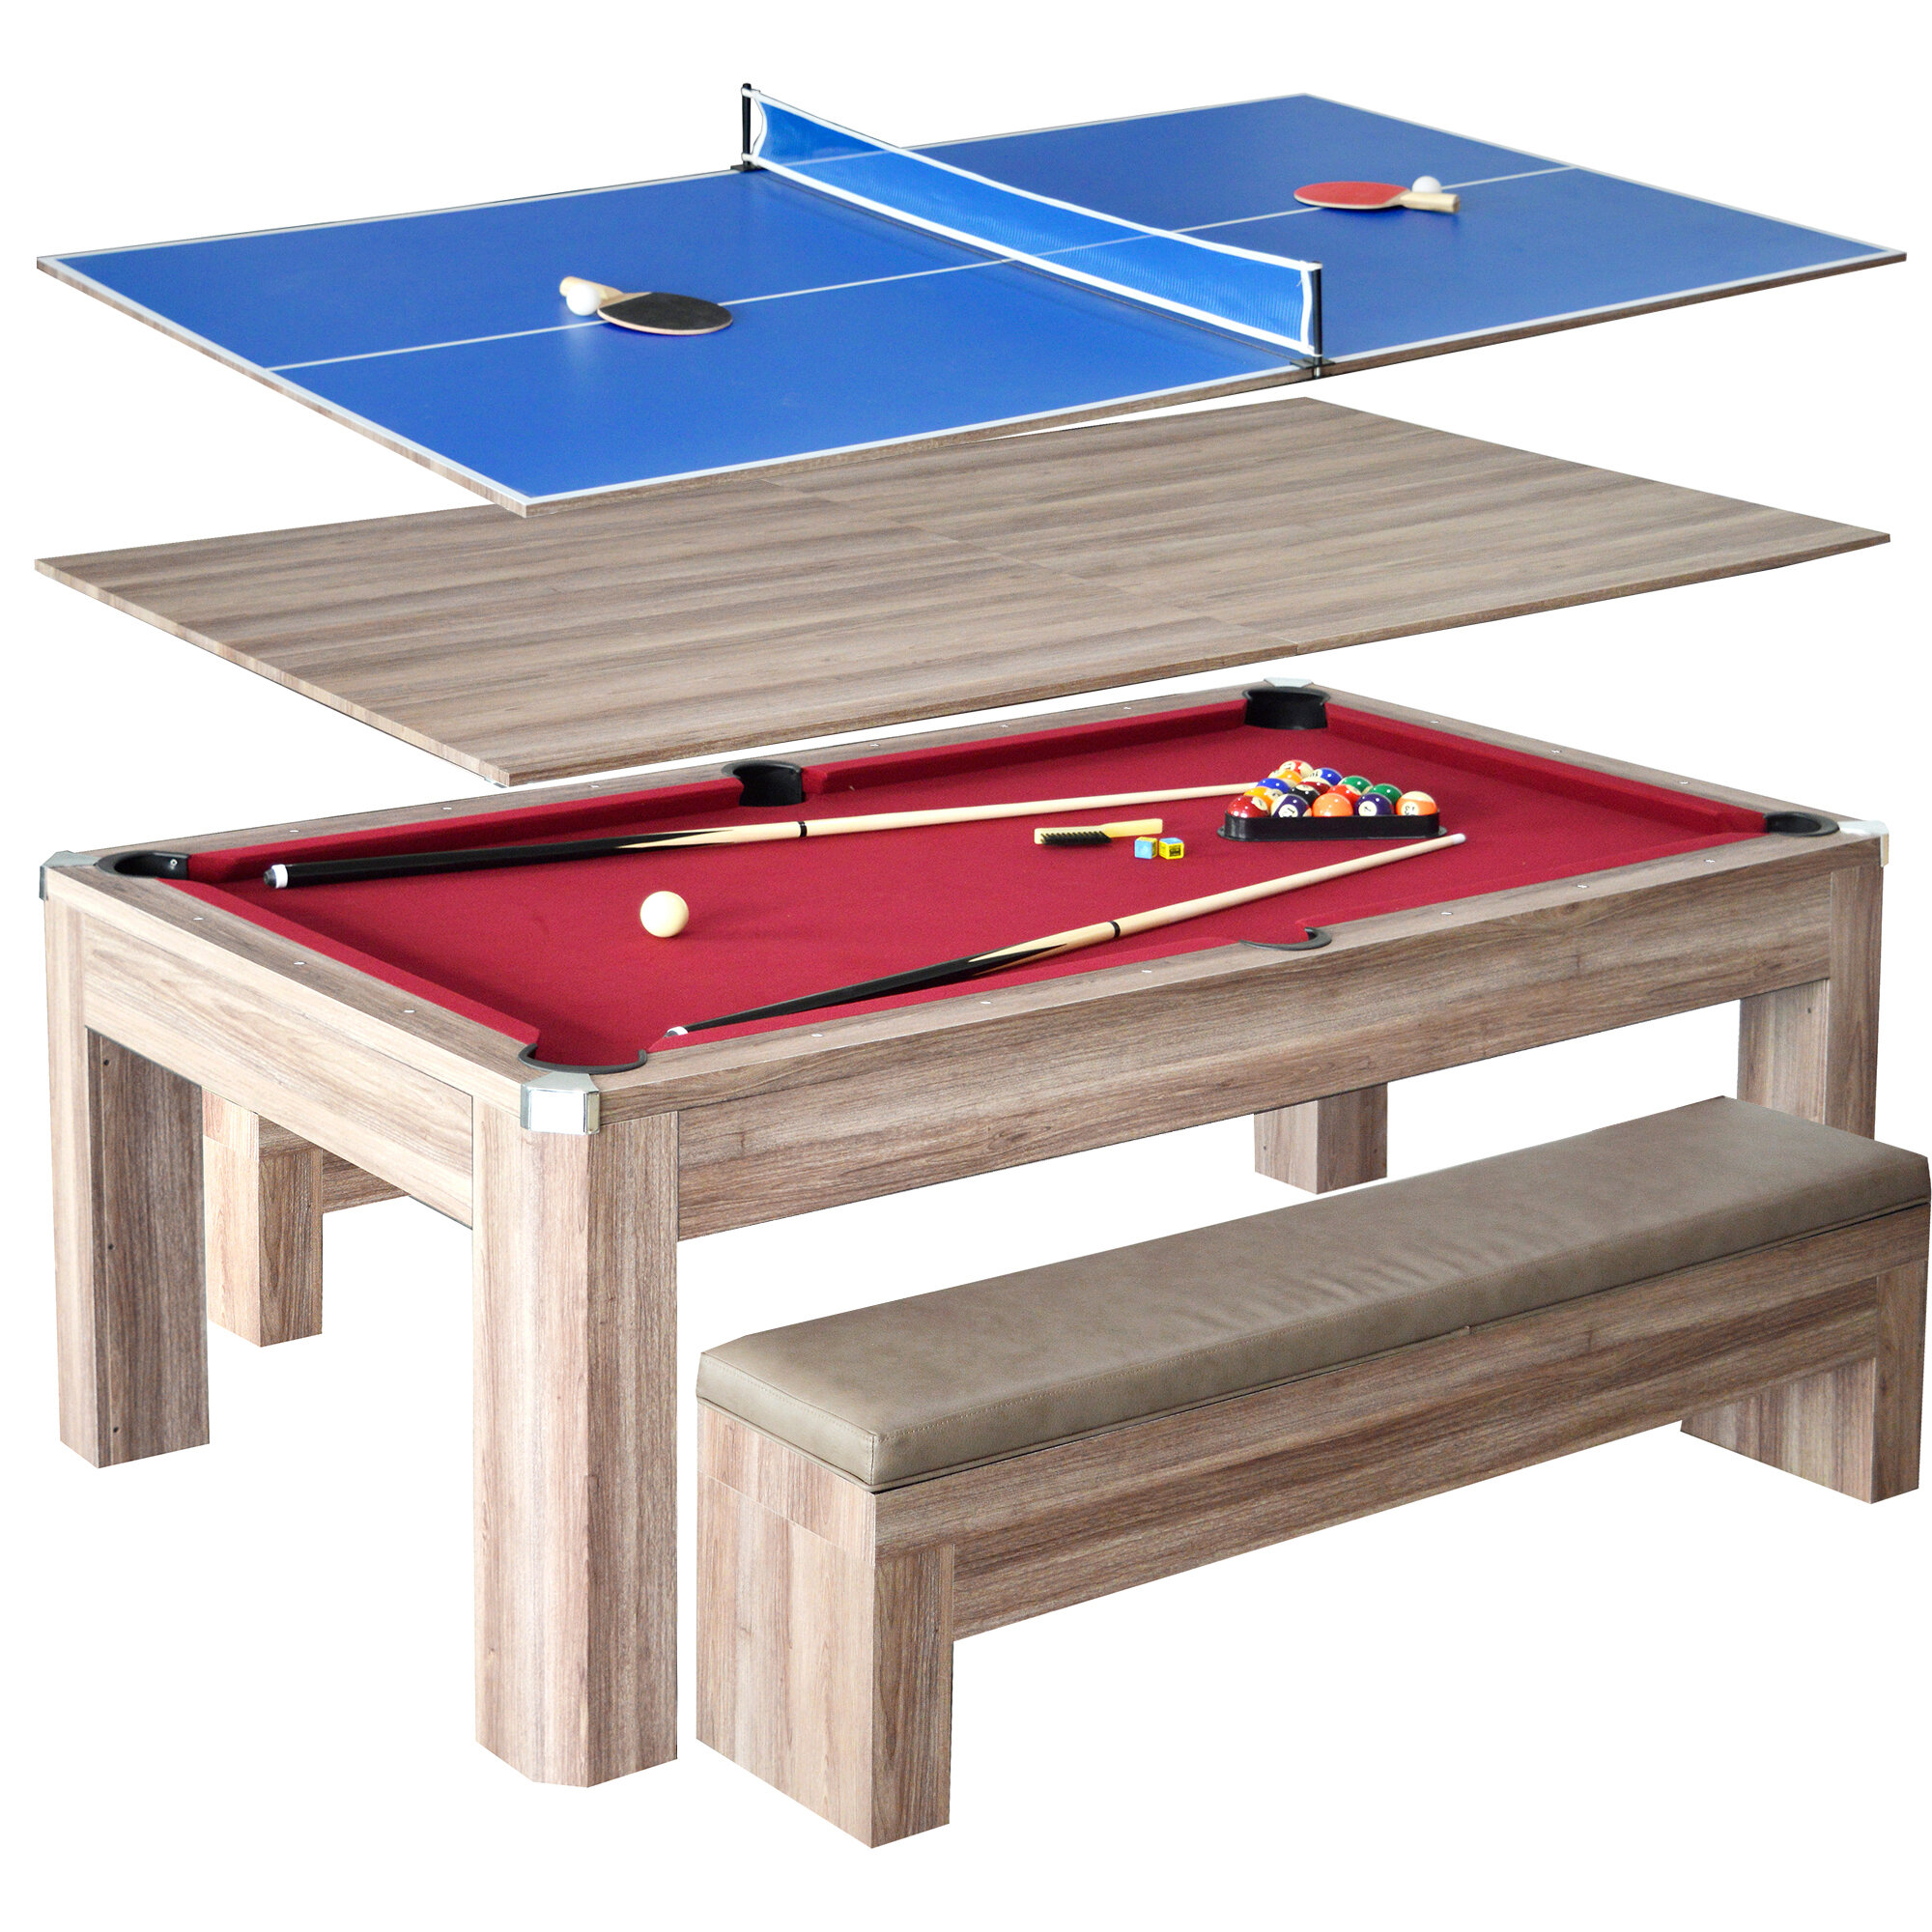 Hathaway Games Newport 2 Piece 7u0027 Pool Table Set U0026 Reviews | Wayfair